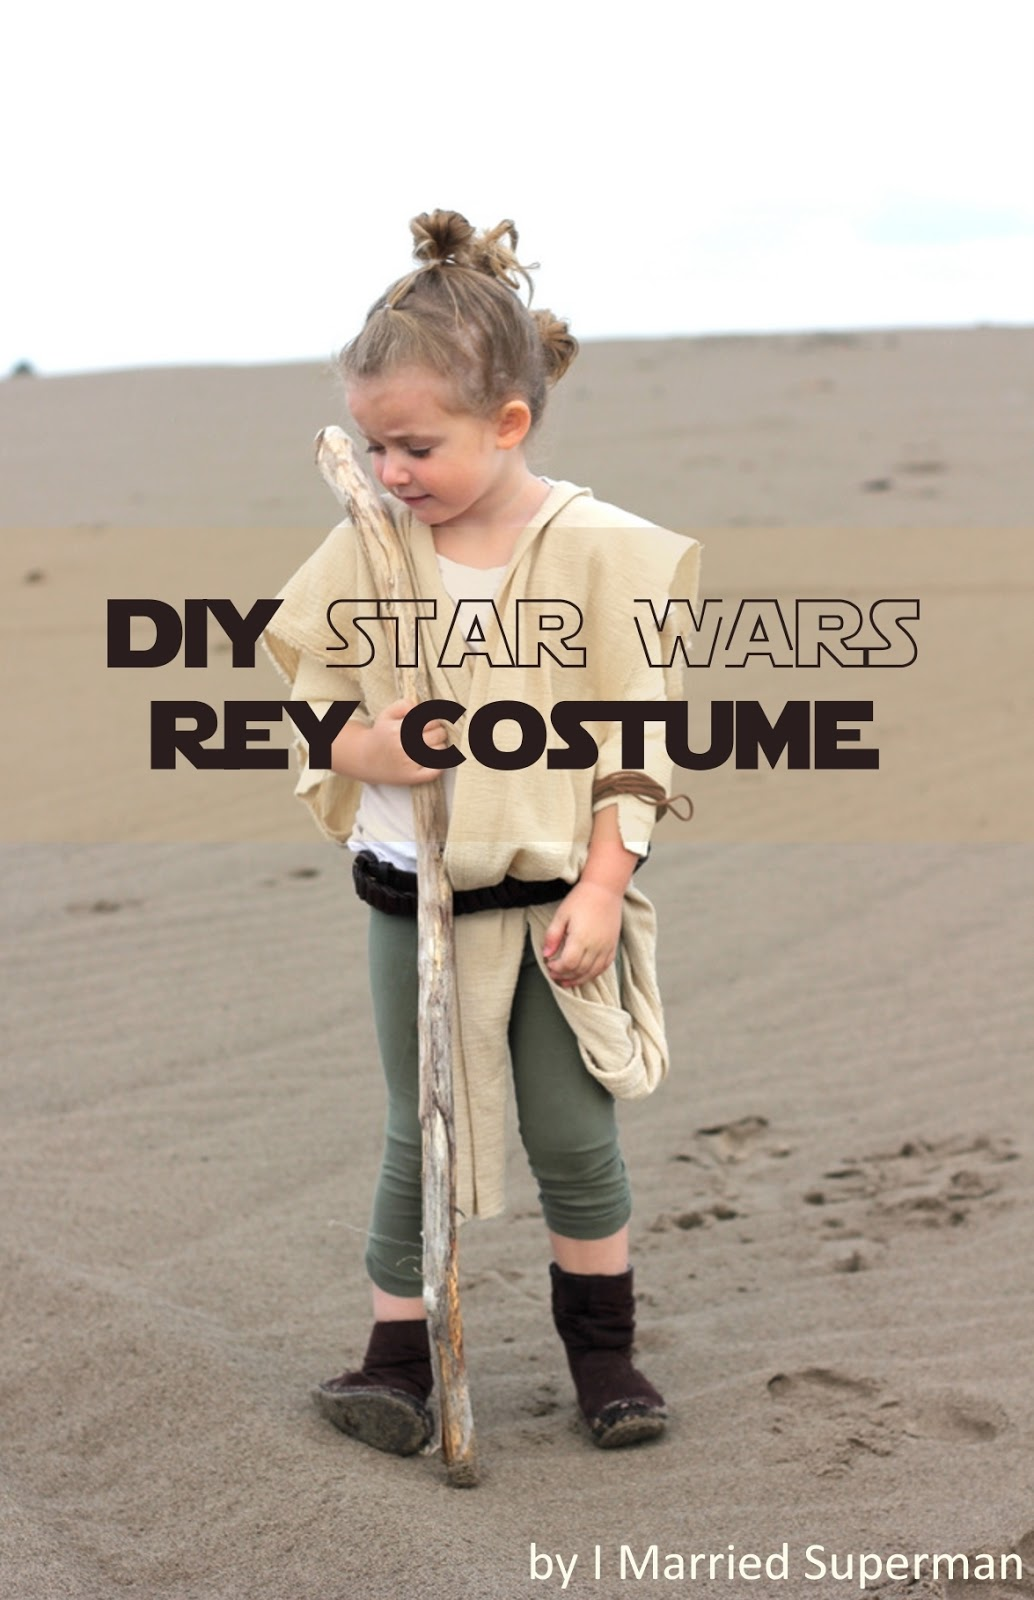 I married superman october 2016 diy rey star wars costume solutioingenieria